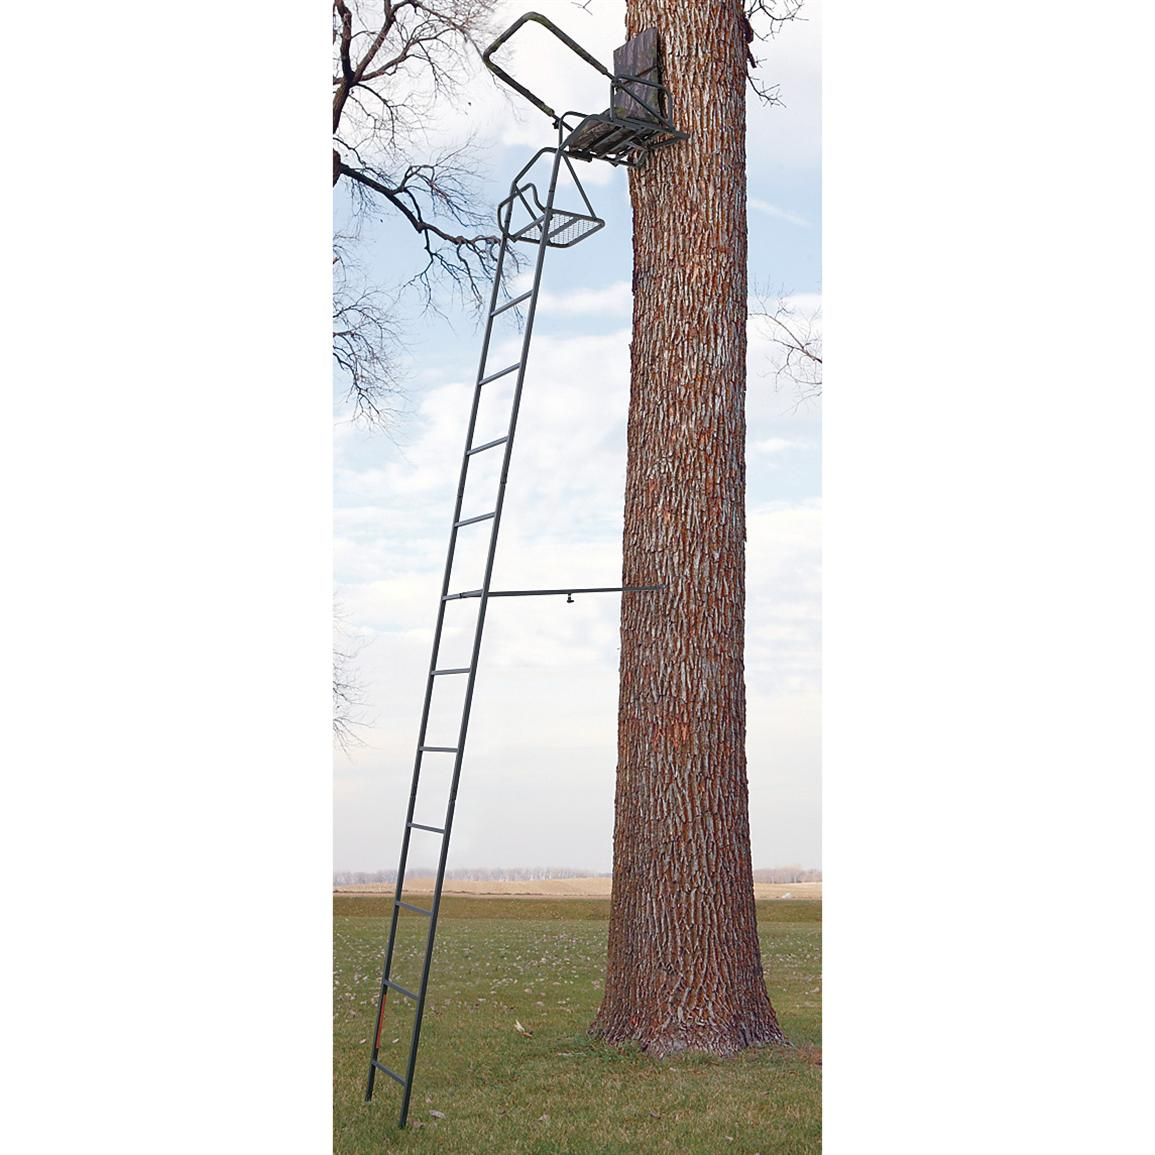 Guide Gear 16 Deluxe Ladder Tree Stand 158965 Ladder